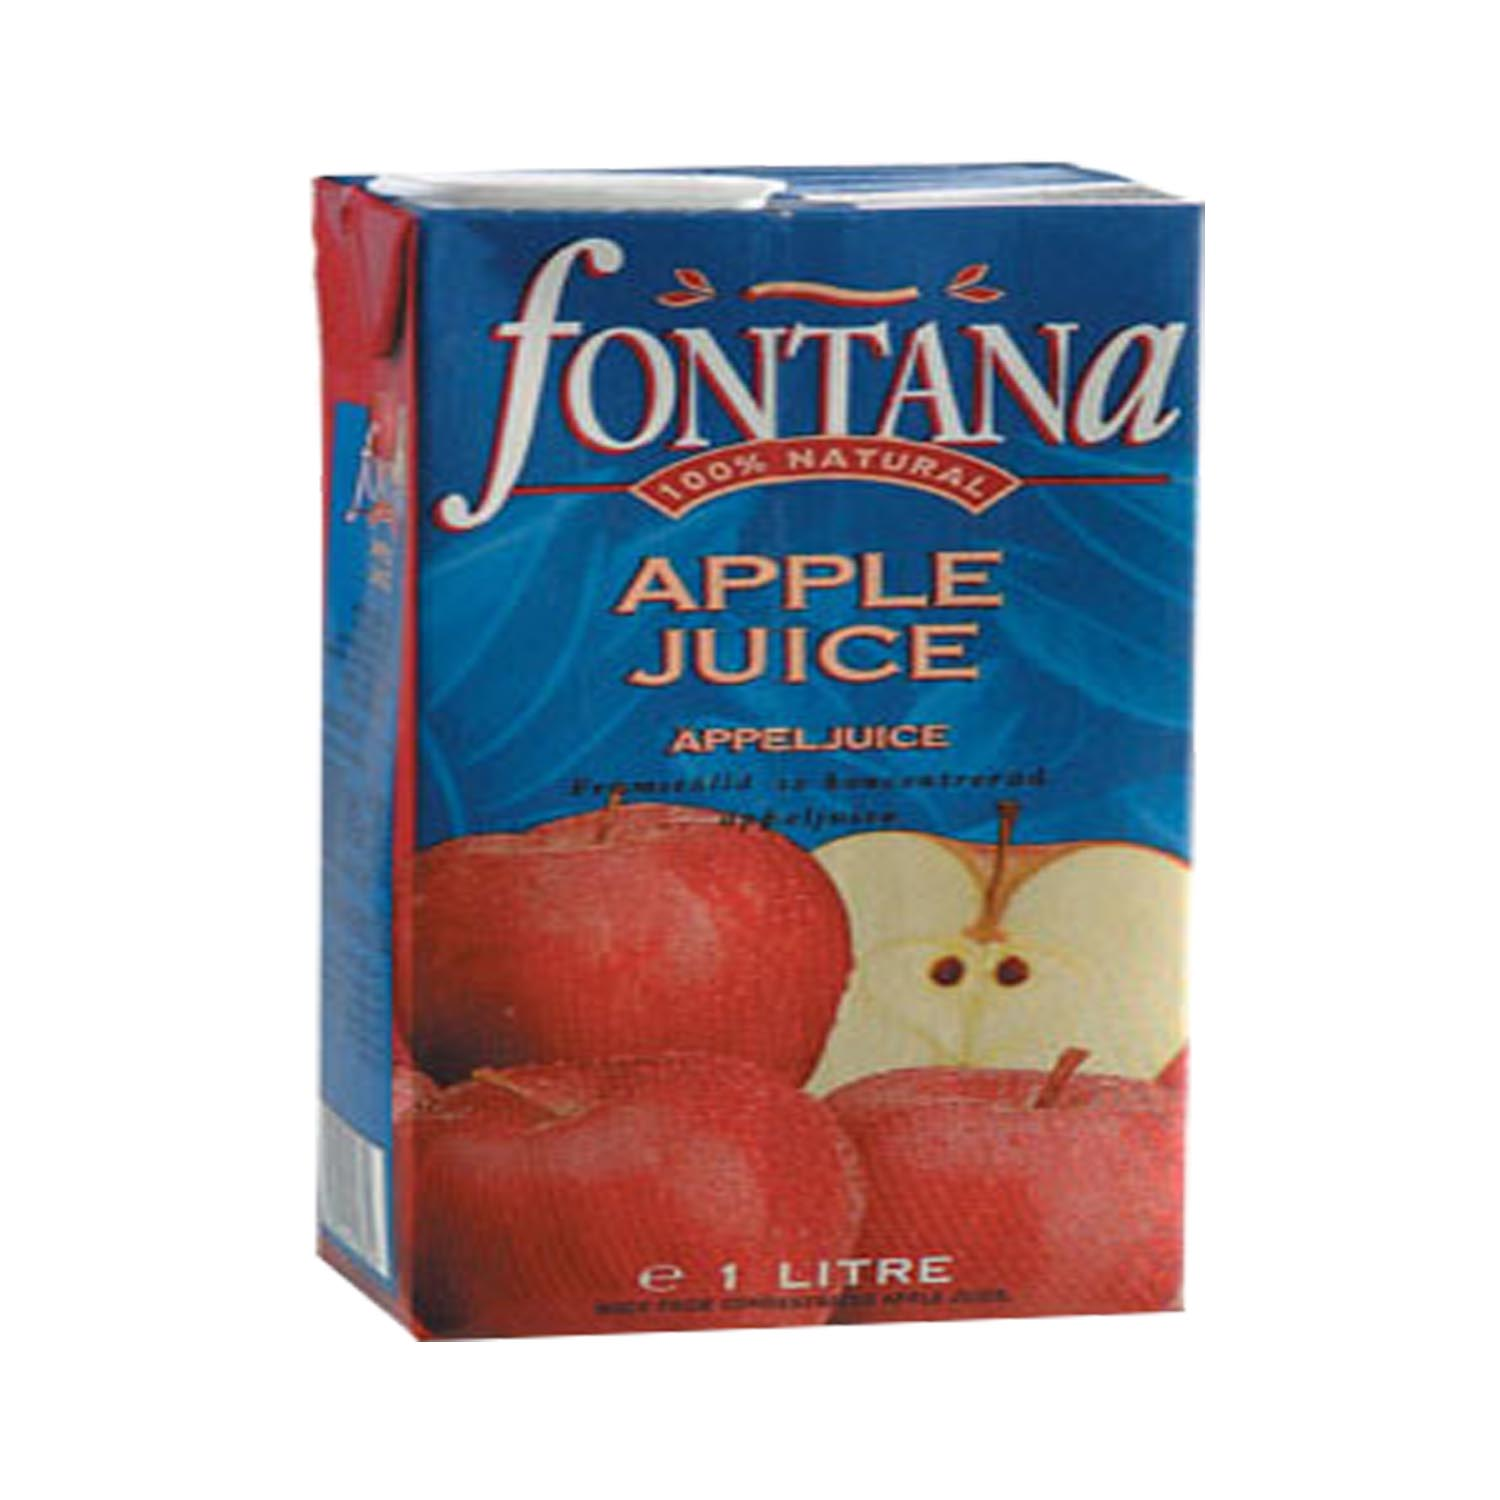 FONTANA 100% Natural Fruit Juice - Apple